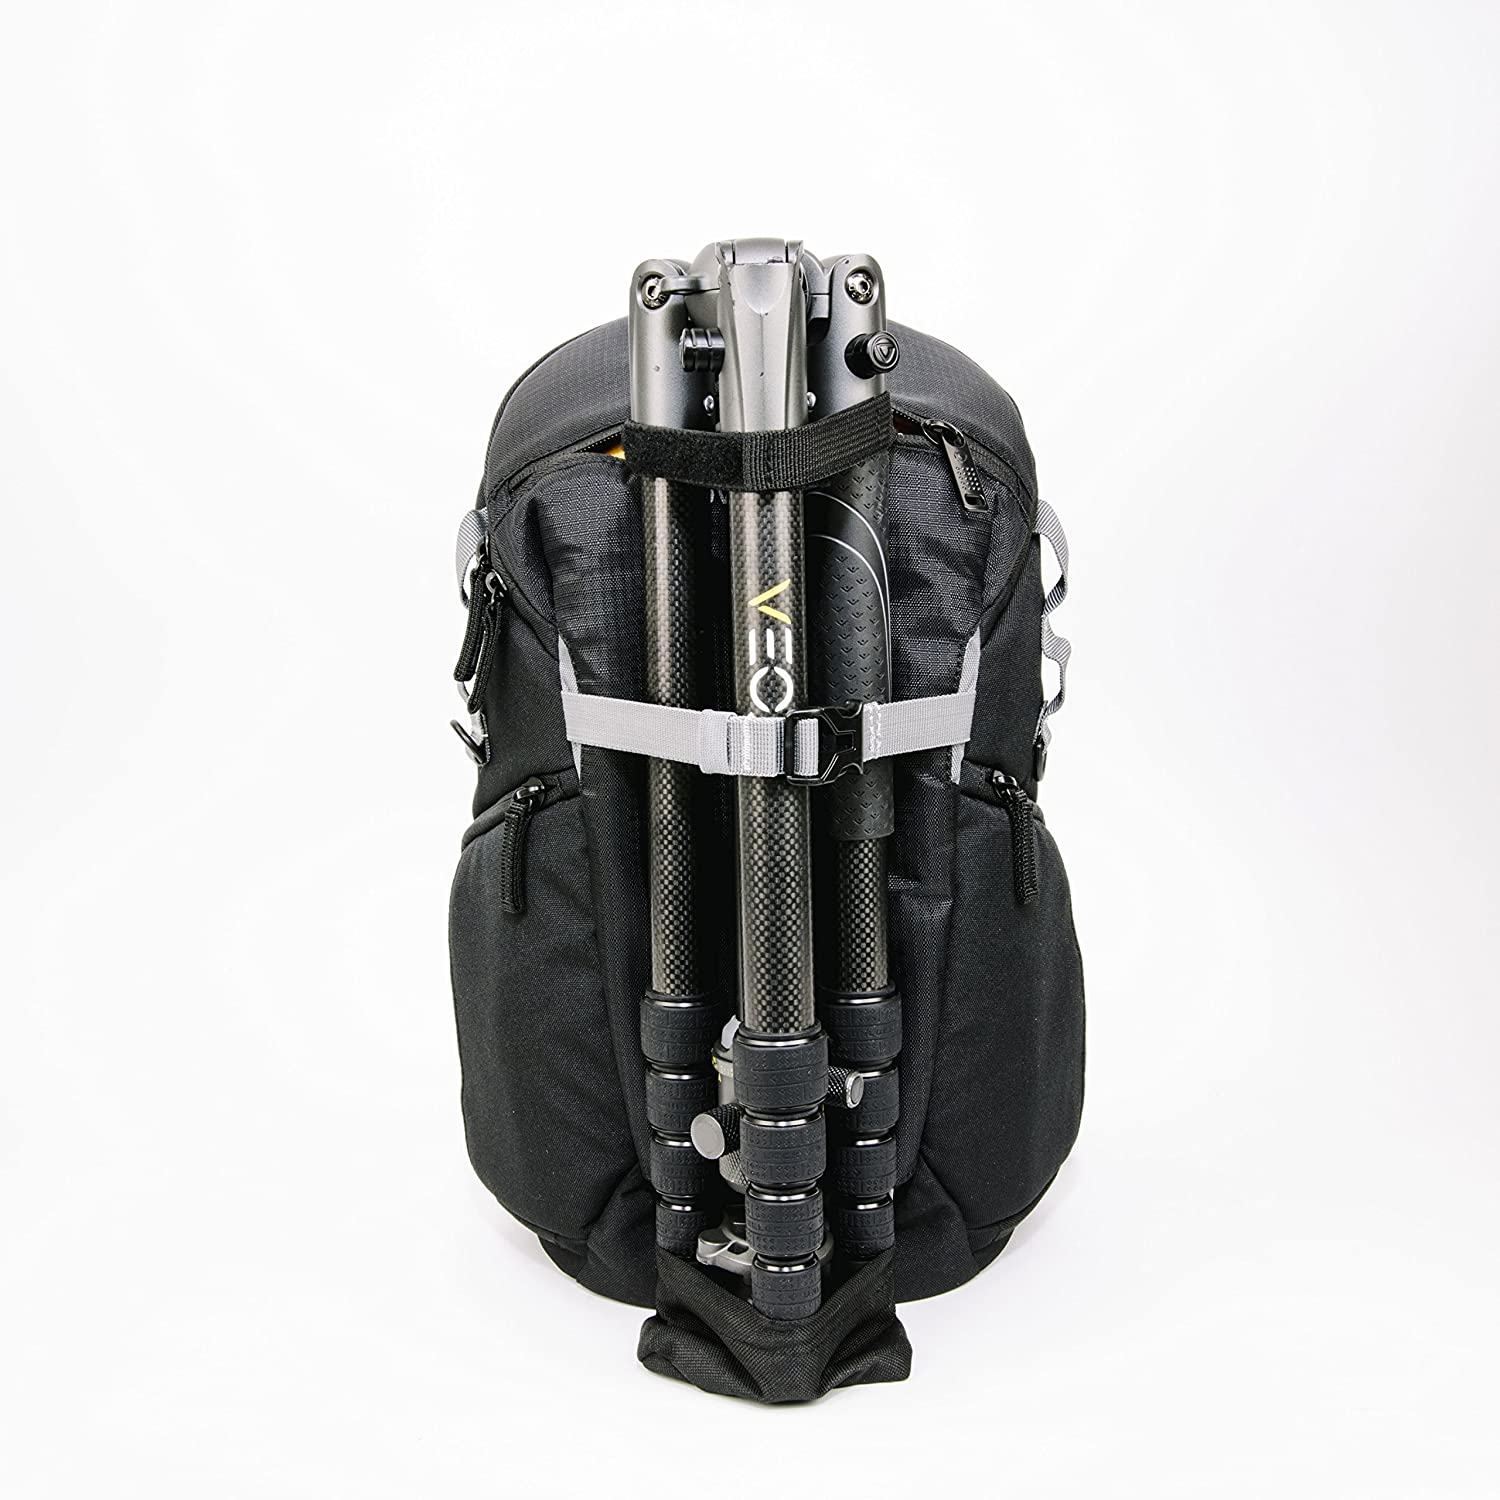 Amazon.com : VANGUARD Sling Backpack, Black (VEO Discover 41) : Camera & Photo